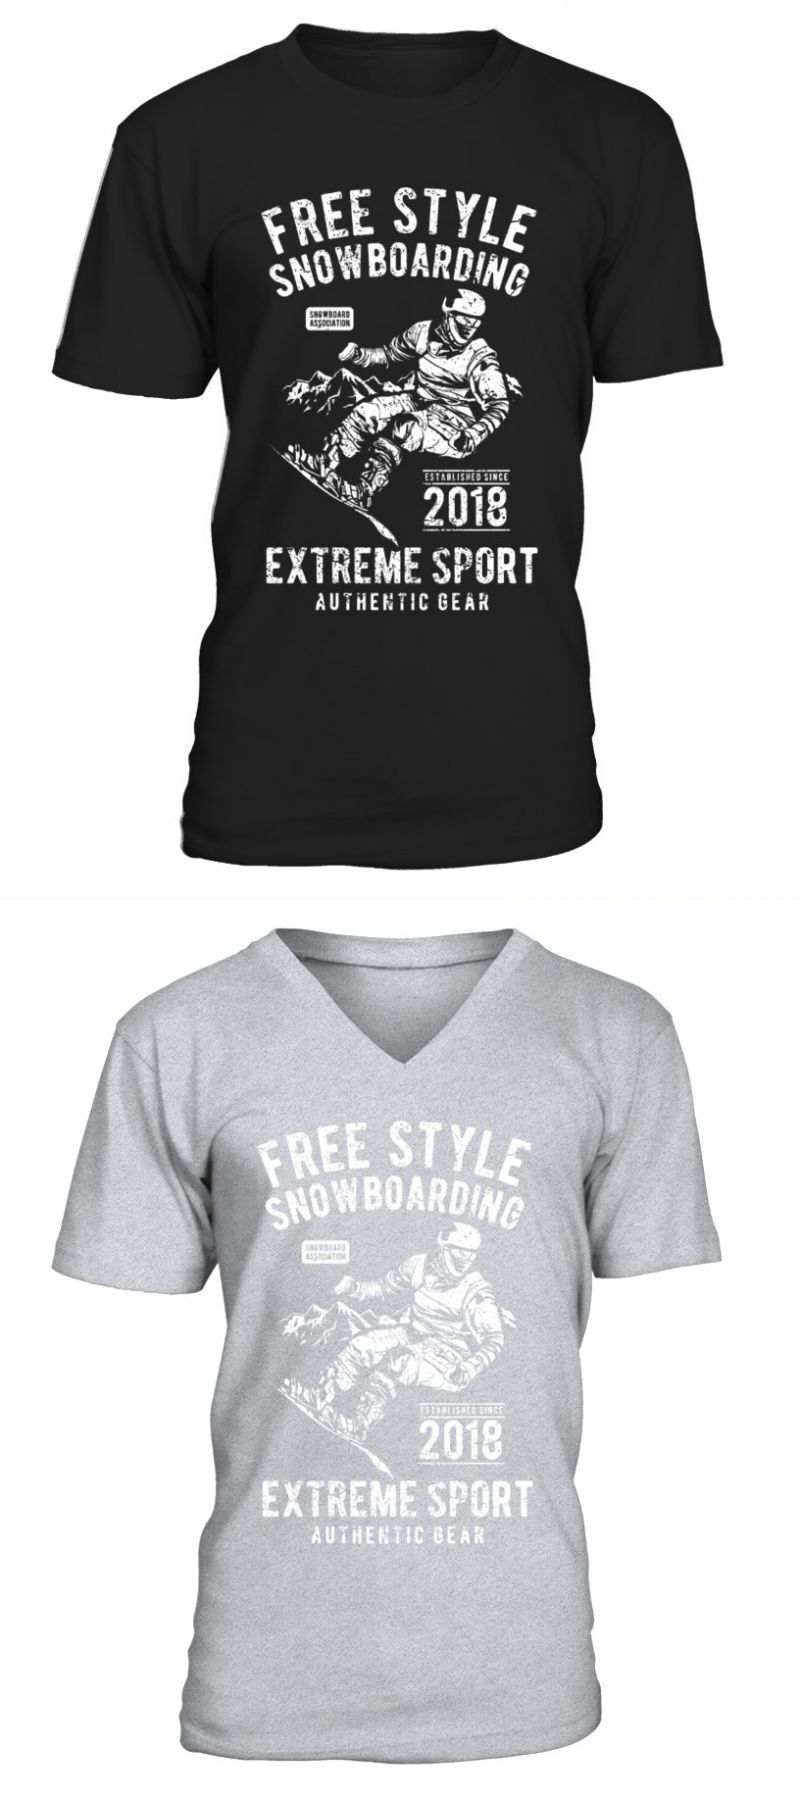 Free Snowboarding Crafts Arts Martial Mixed Style And Shirt 7CxwZ8TBXq